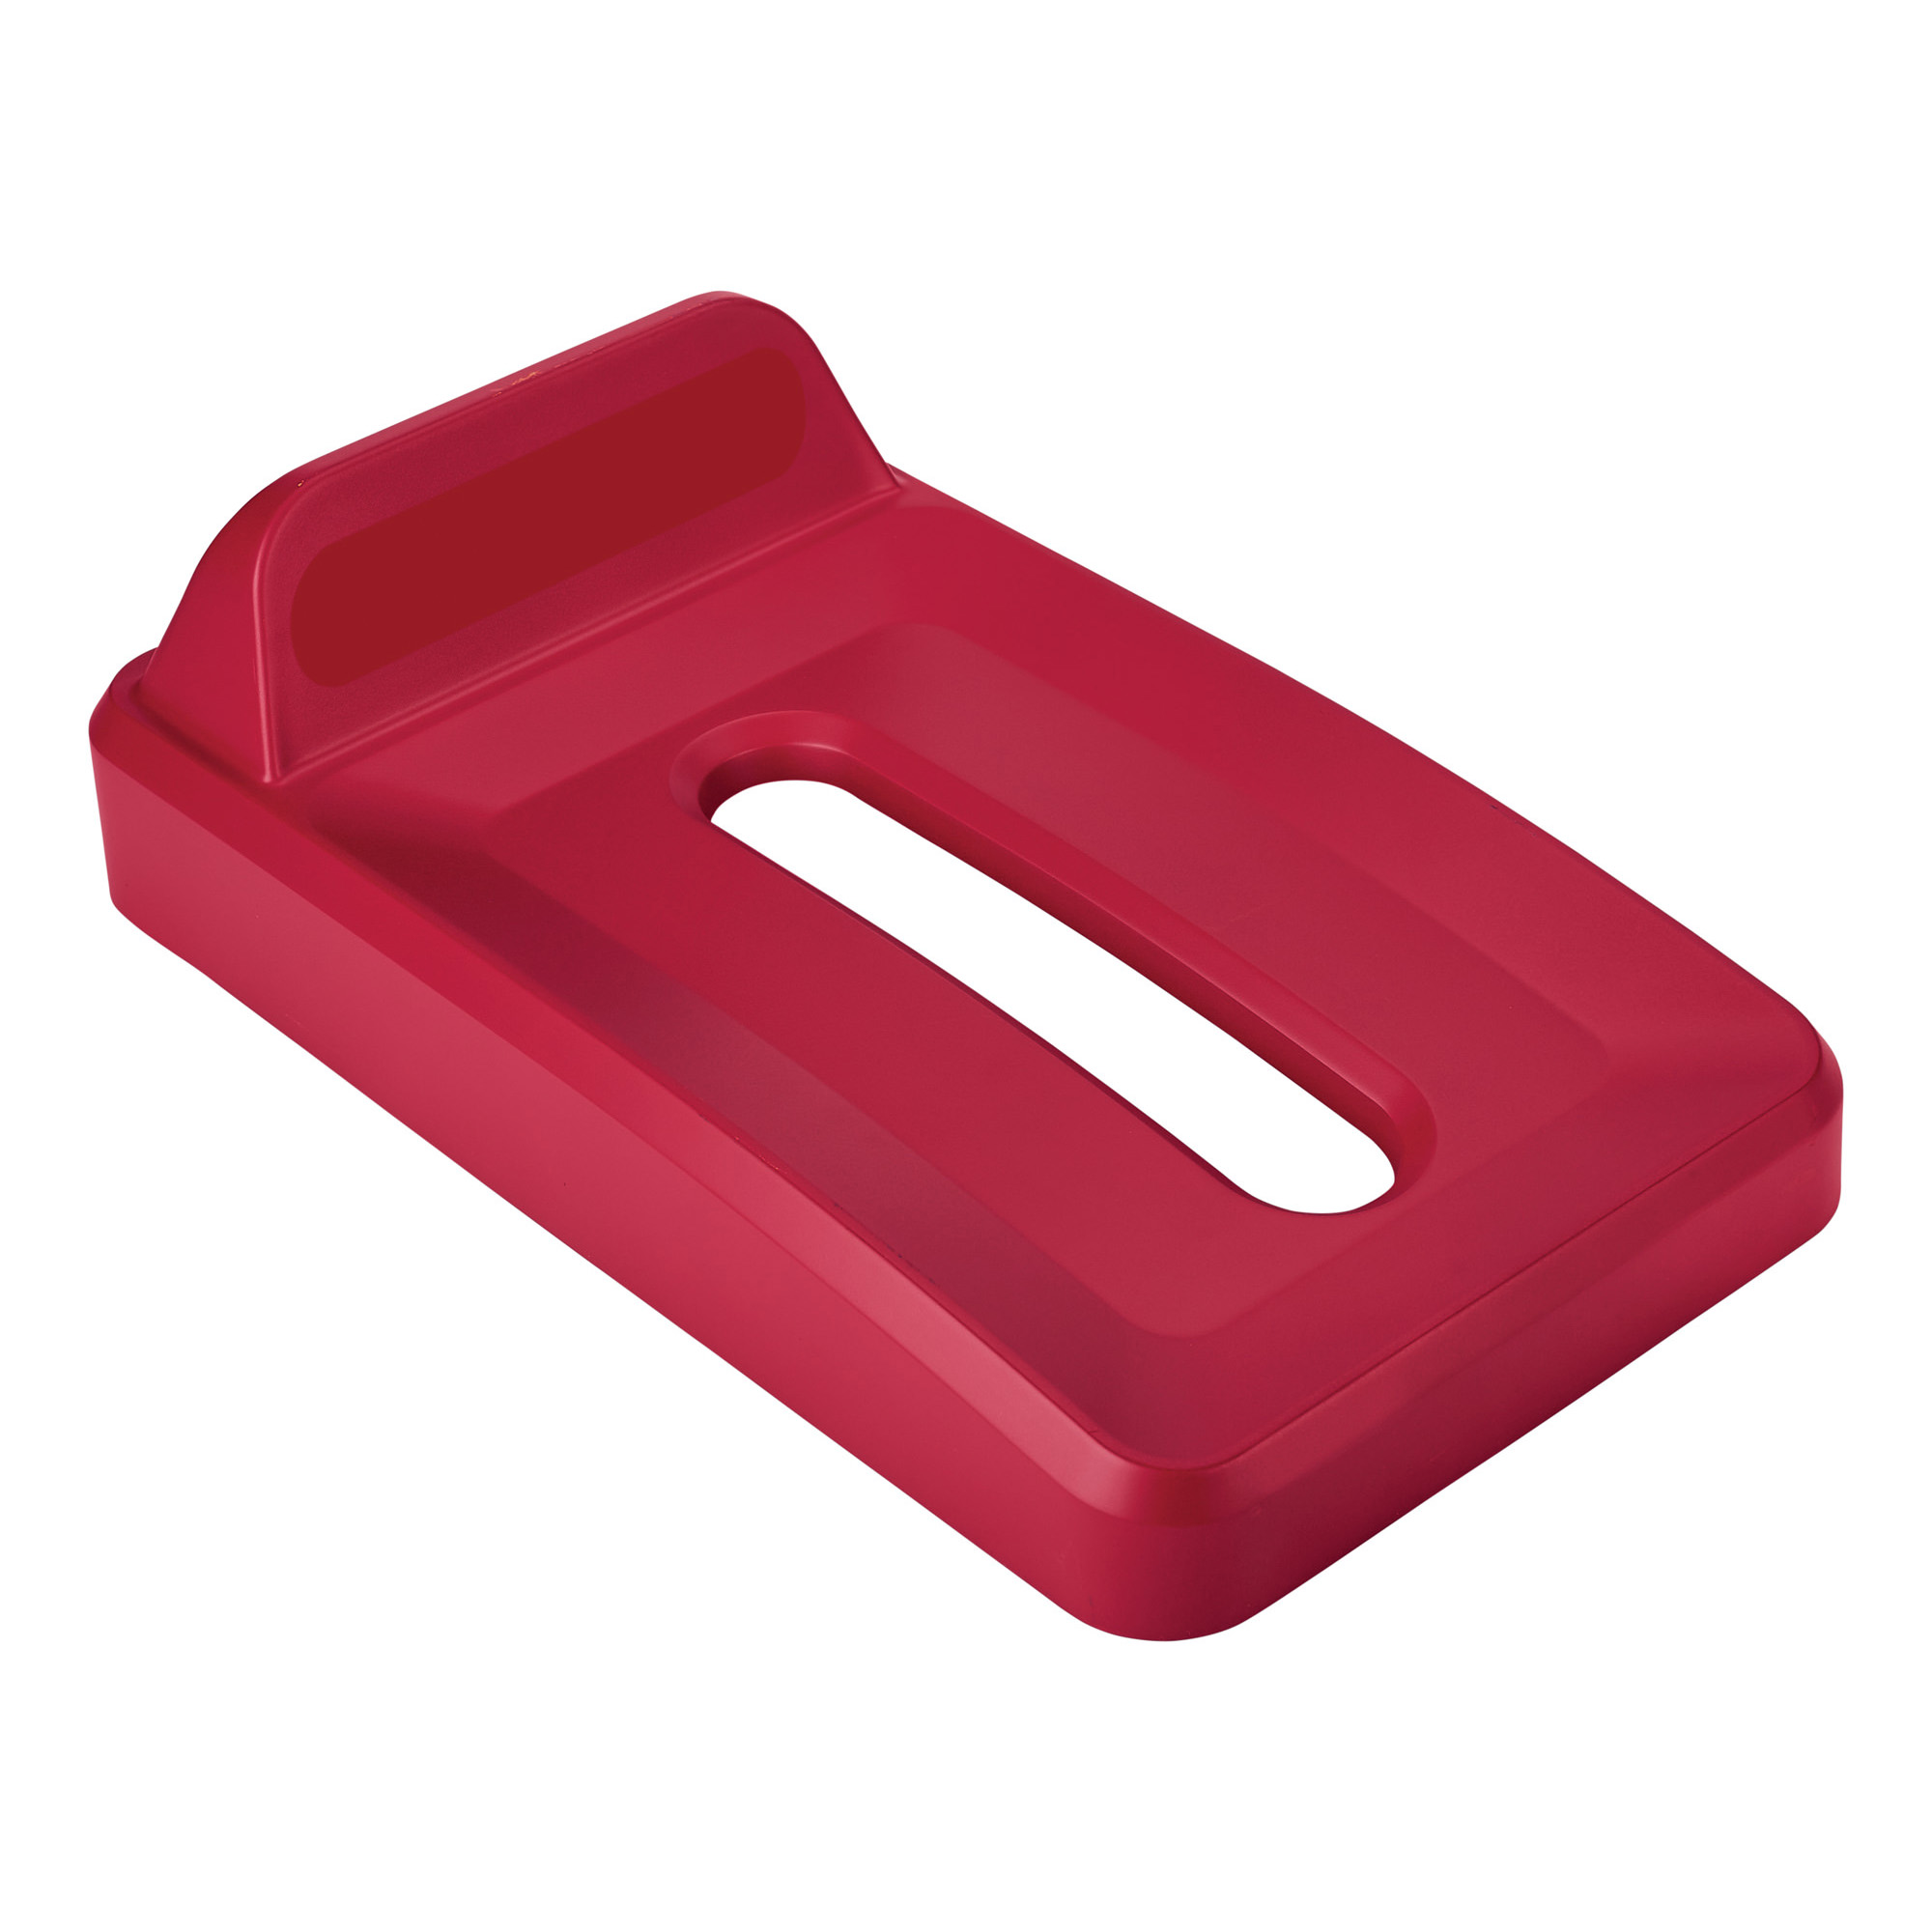 Rubbermaid Commercial Products 2018272 trash receptacle lid / top